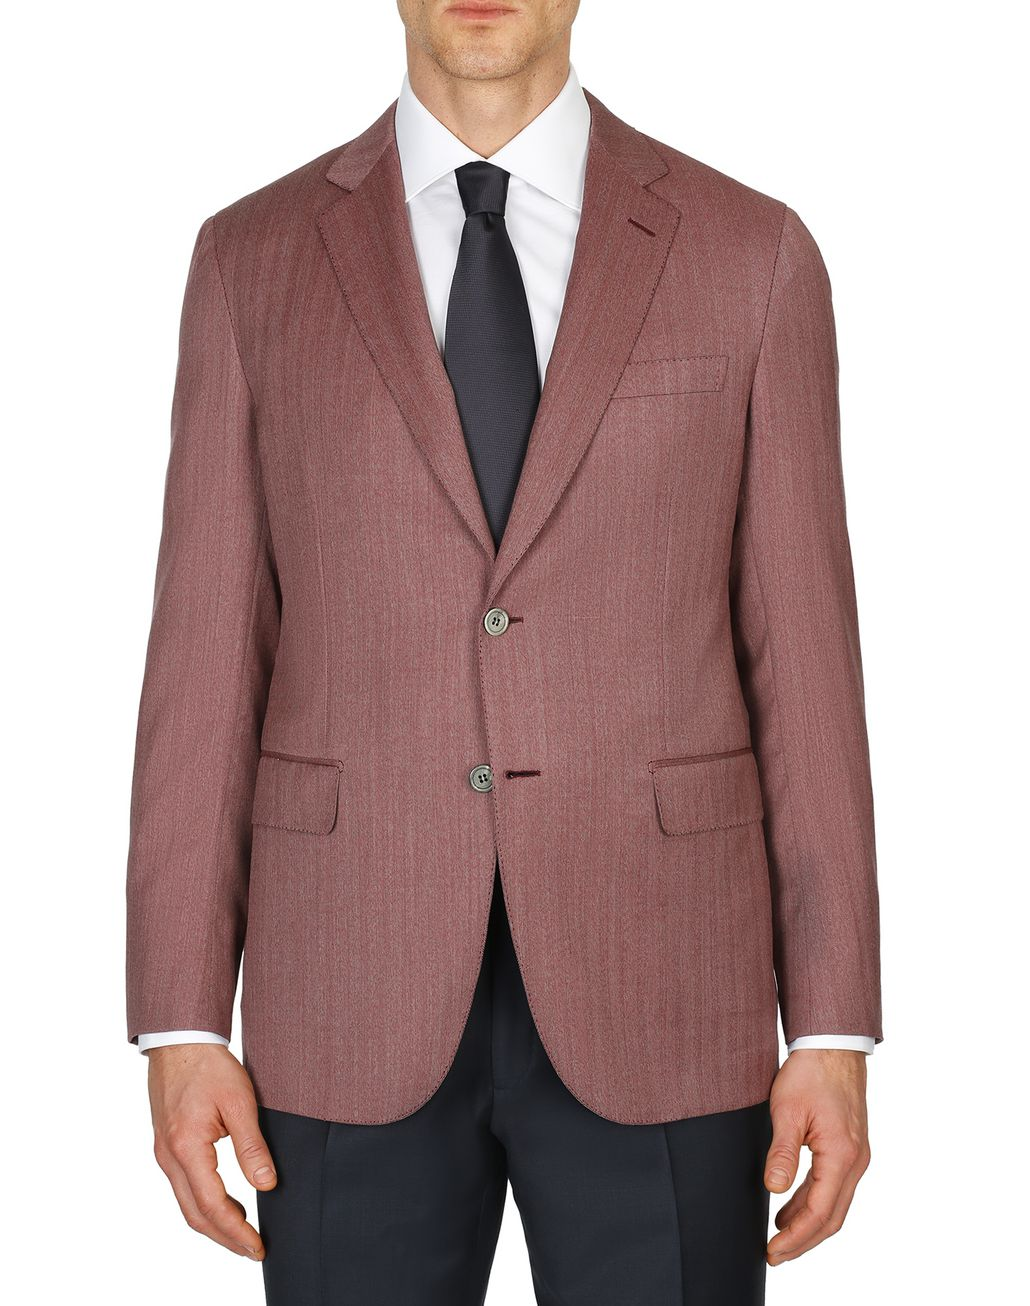 BRIONI Bordeaux Herringbone Plume Jacket Suits & Jackets Man r